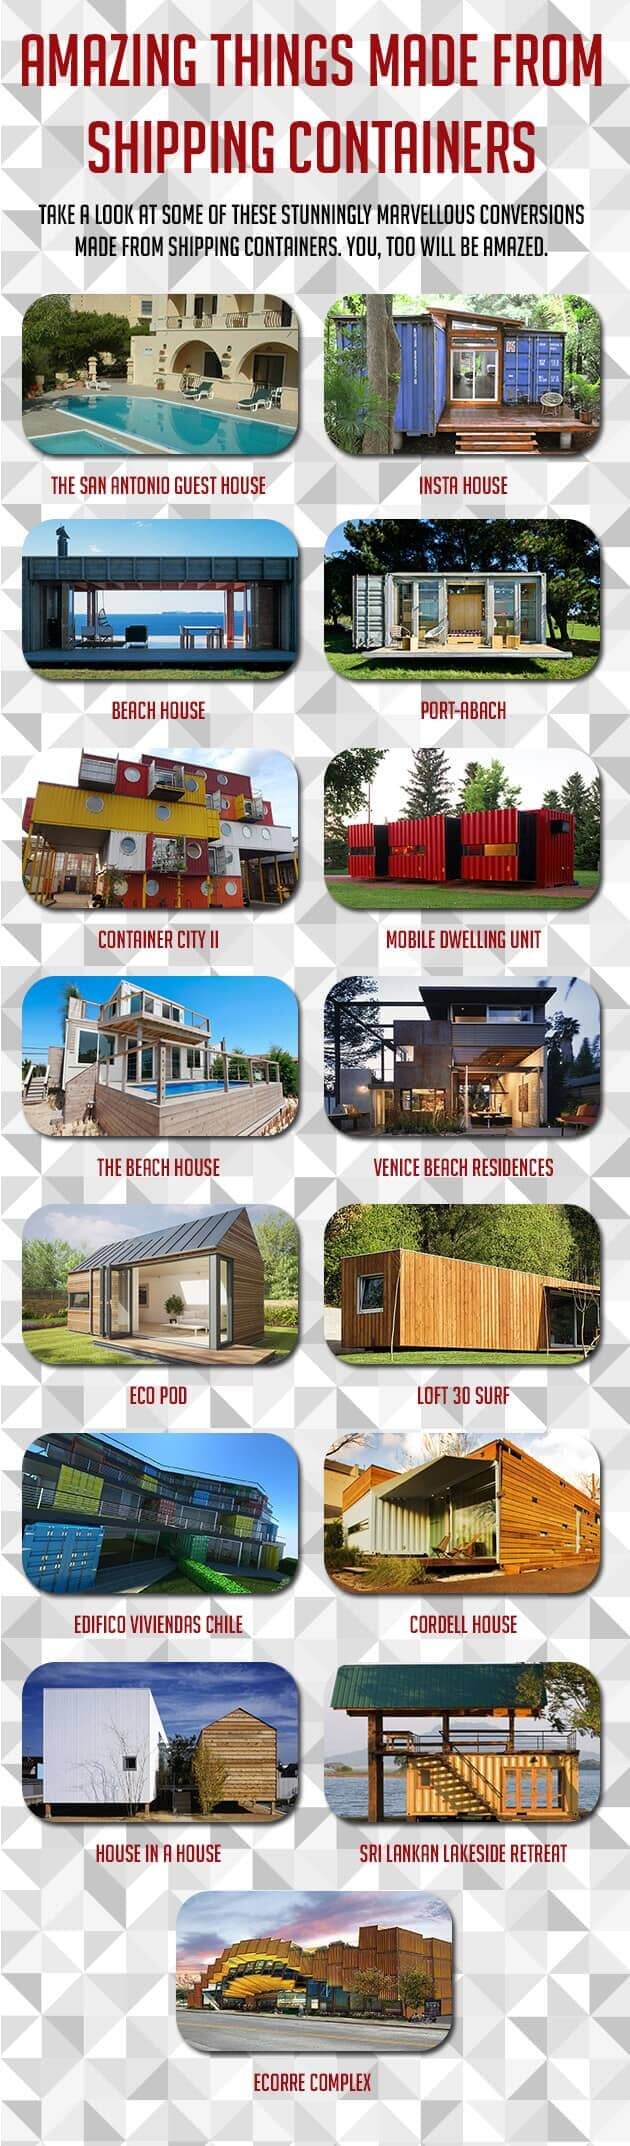 15 Incredible Uses of Shipping Containers.